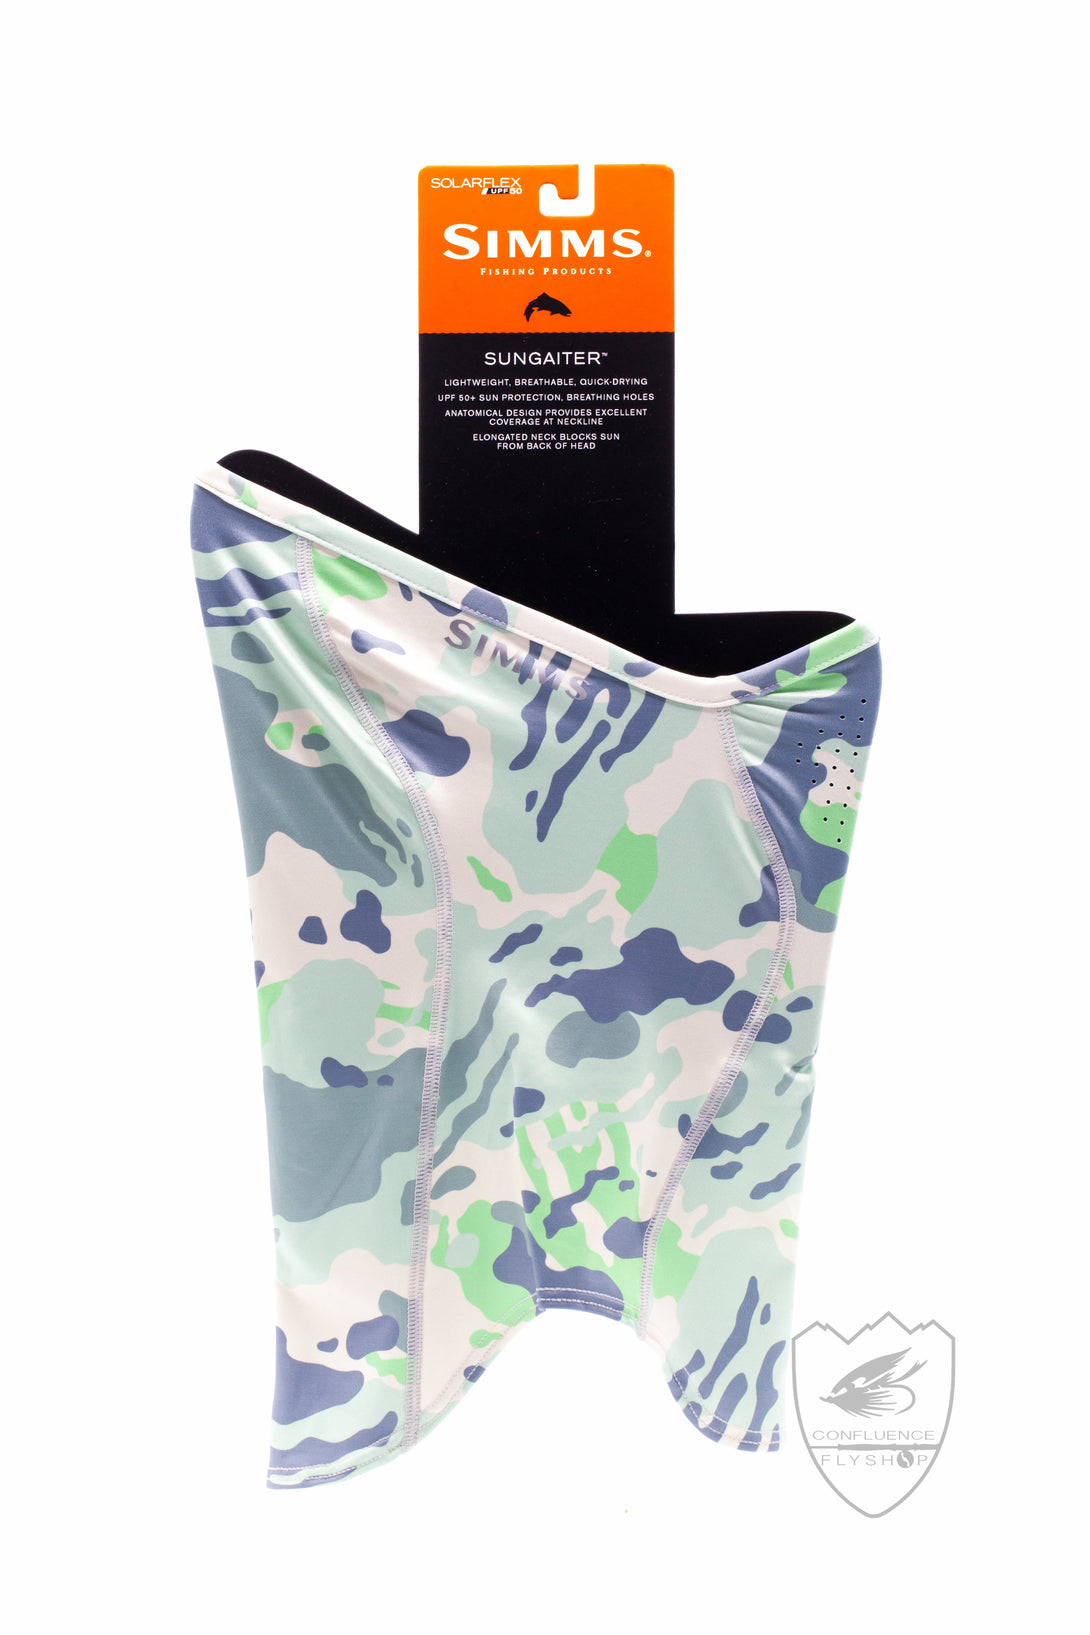 Simms Sungaiter,Accessories,Simms-Confluence Fly Shop